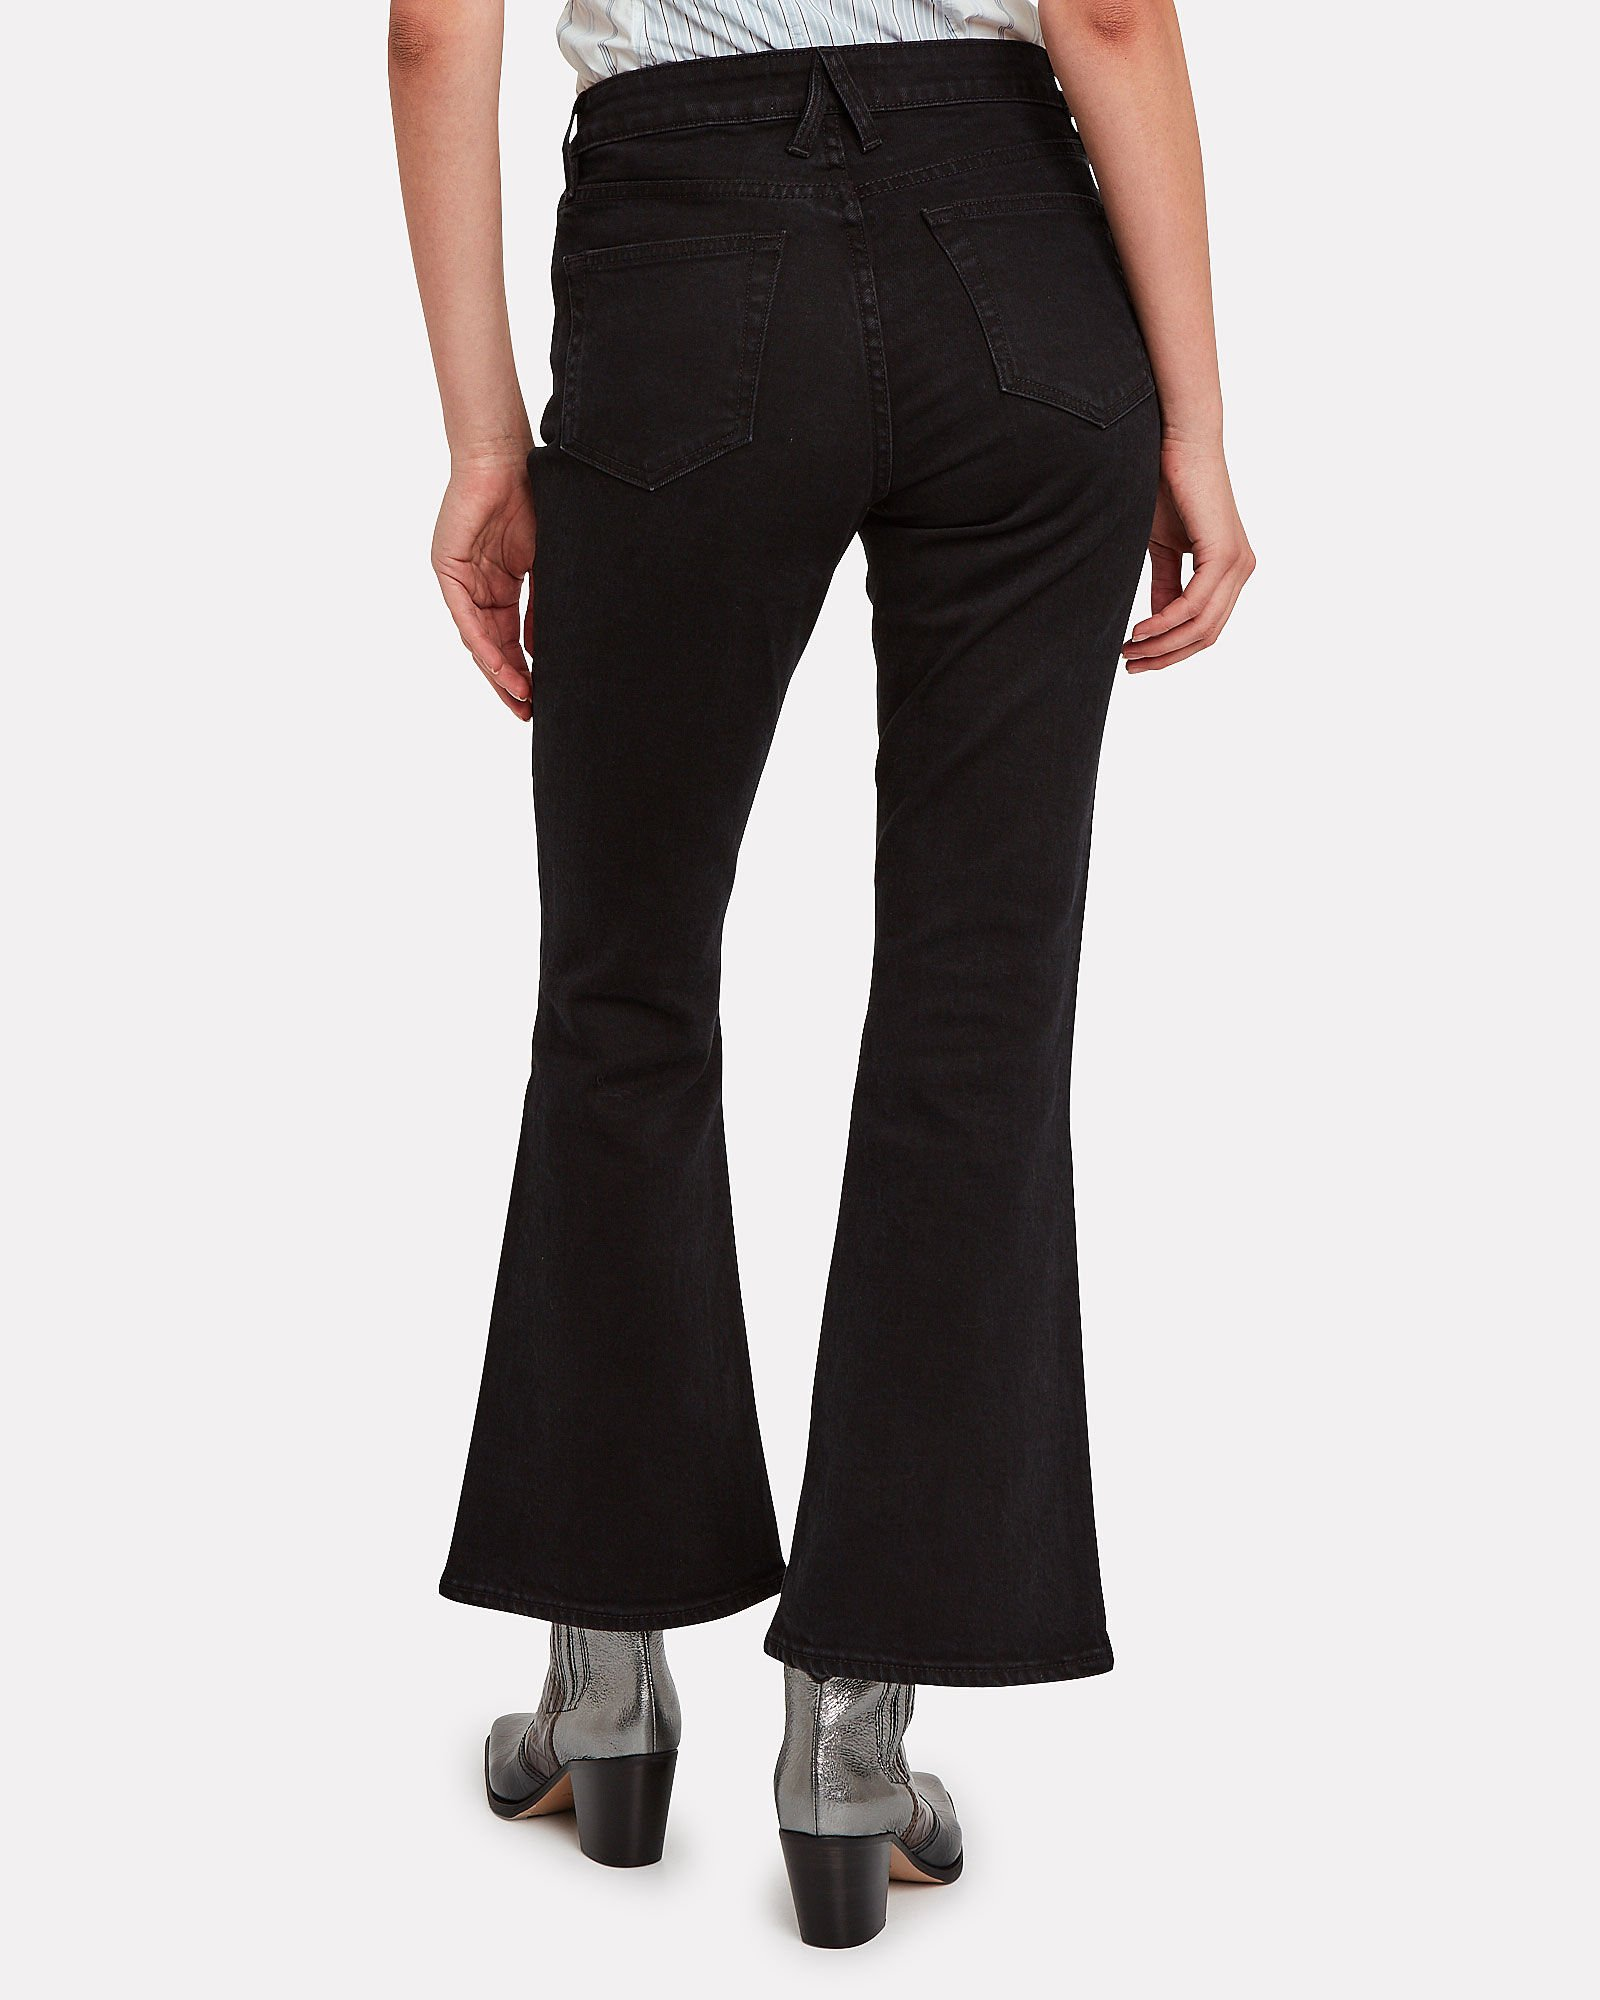 Crystal Flared High-Rise Jeans, BLACK DENIM, hi-res